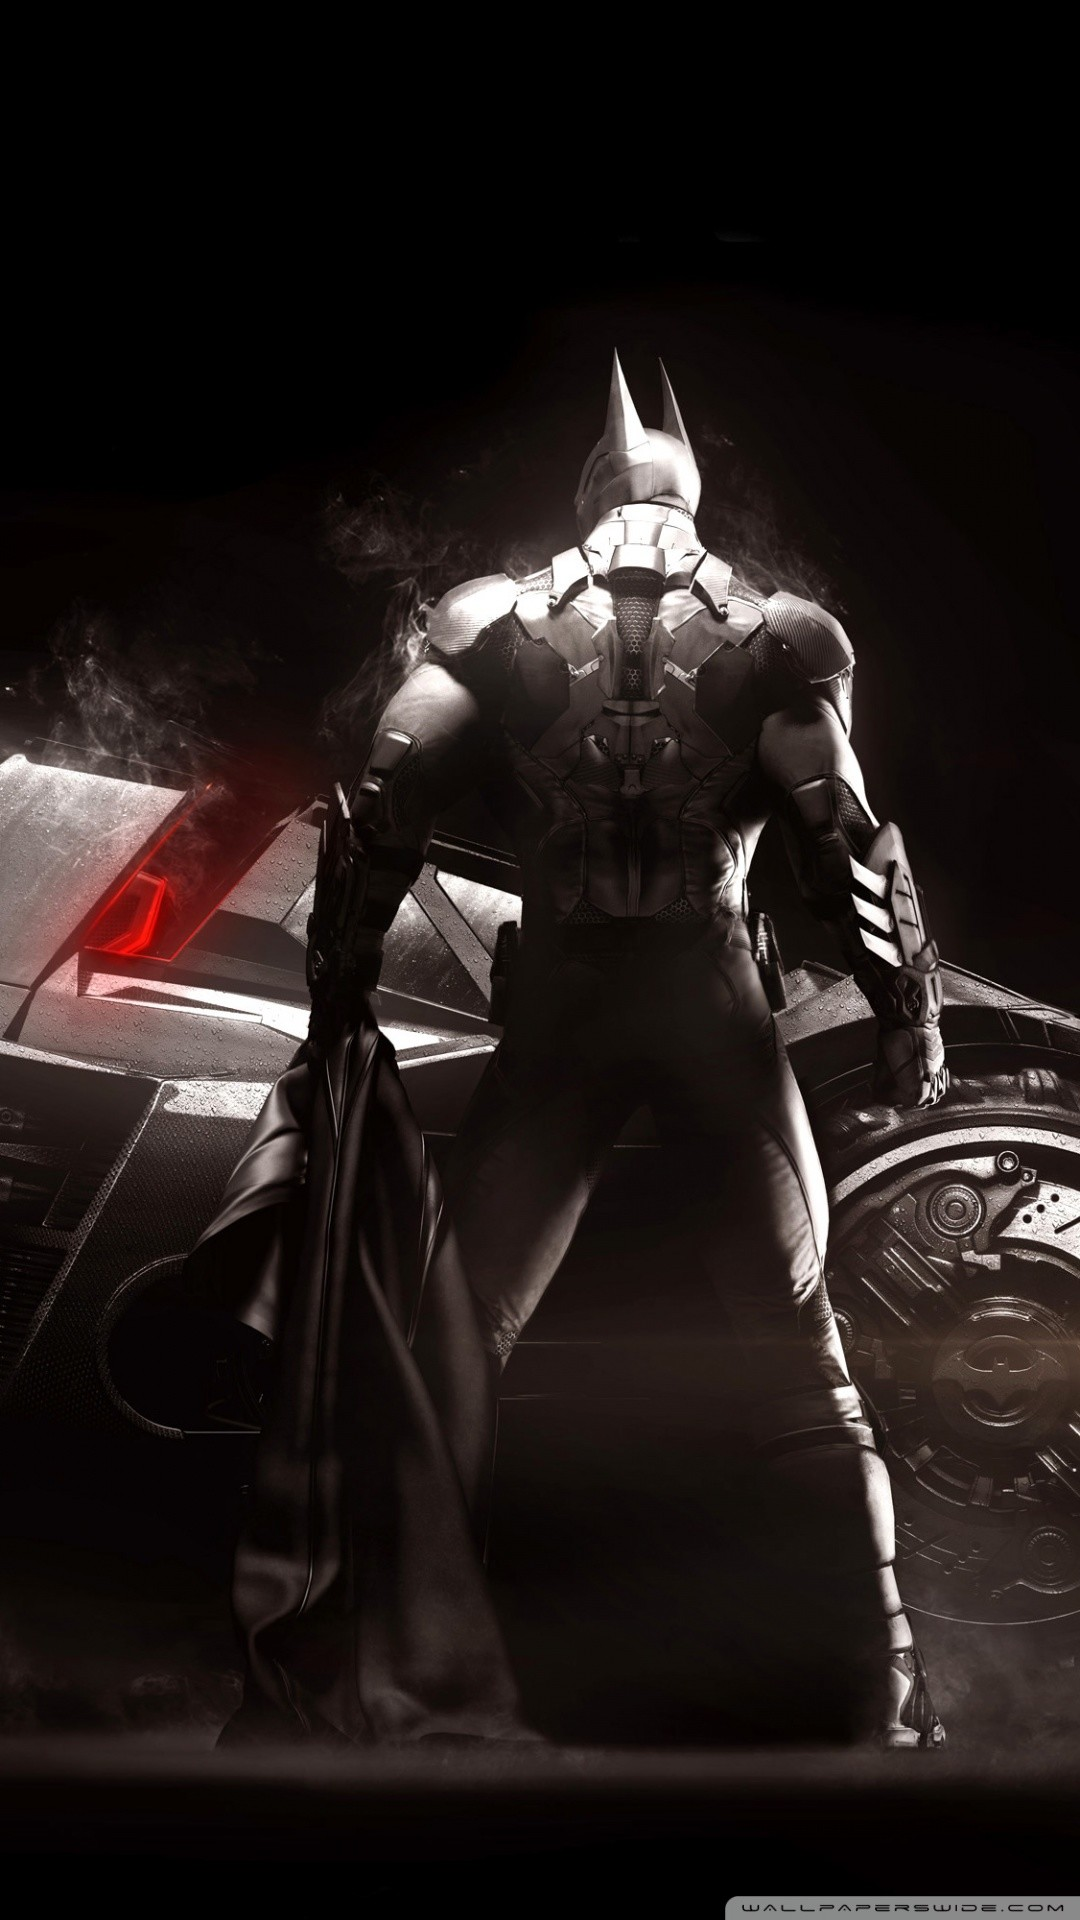 Free Batman Arkham Knight, Batmobile, Video Game phone wallpaper by dana111107